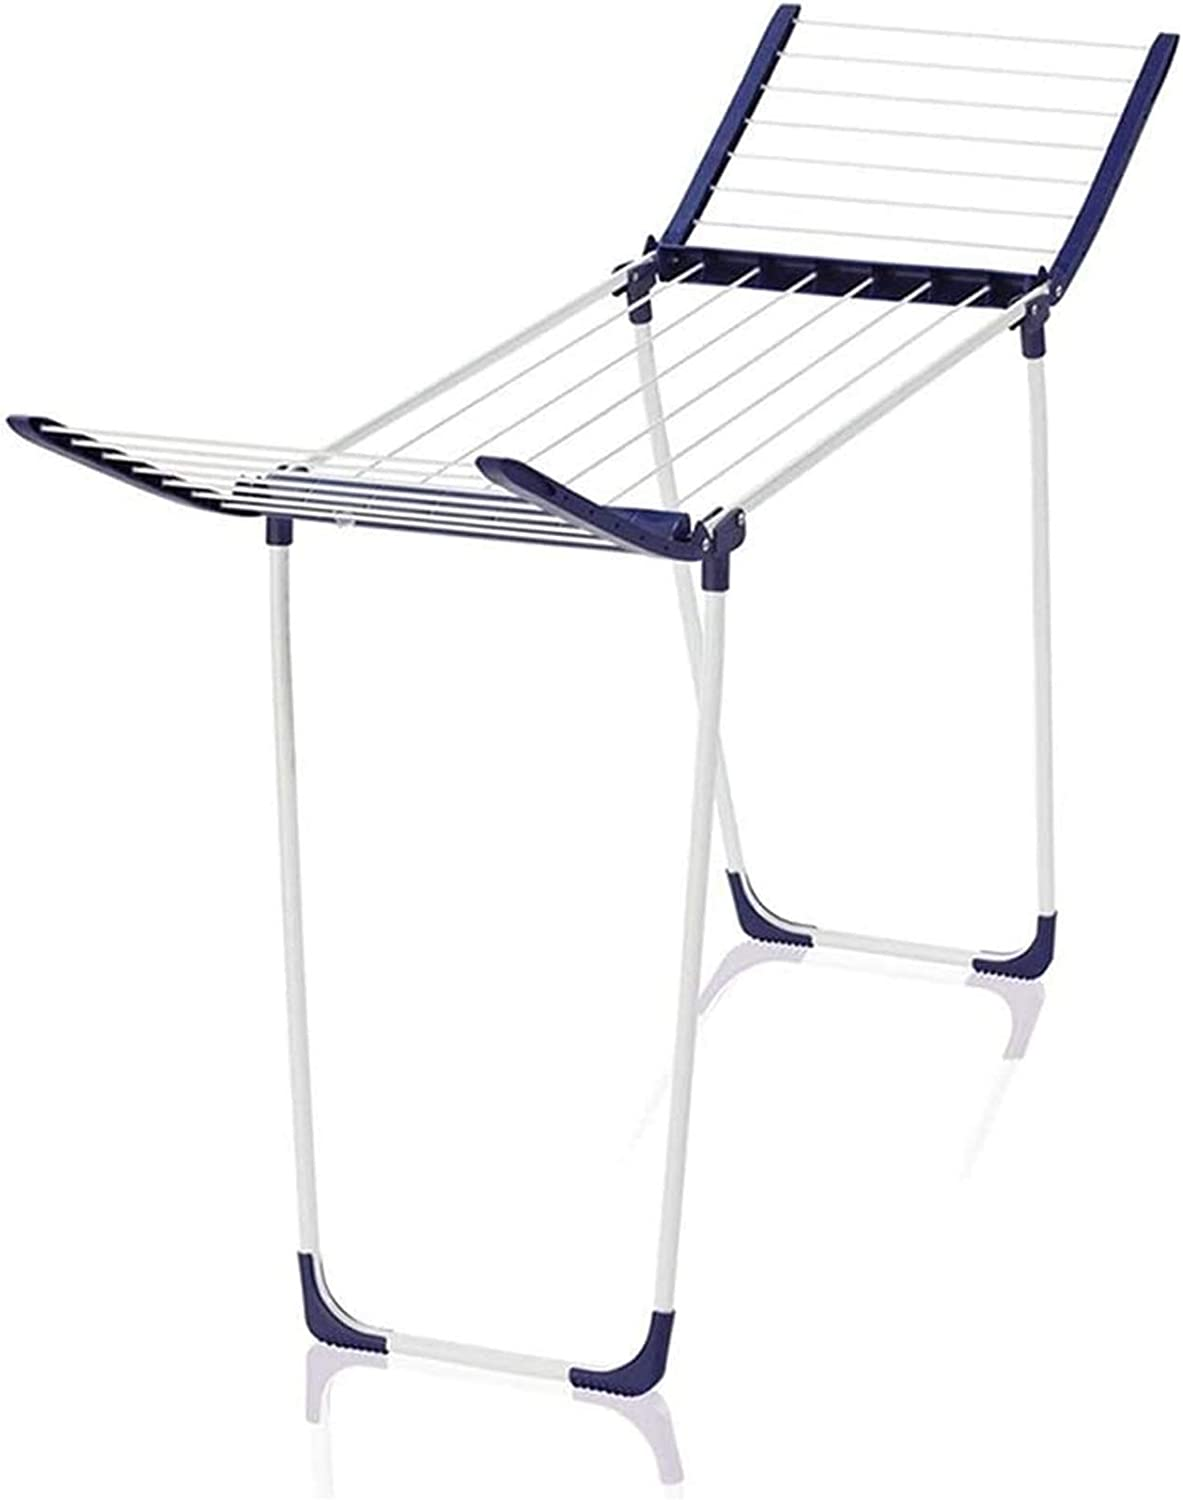 TUHFG Electric Heated Clothes Airer Sale price Drying Racks Genuine Free Shipping Dryer A